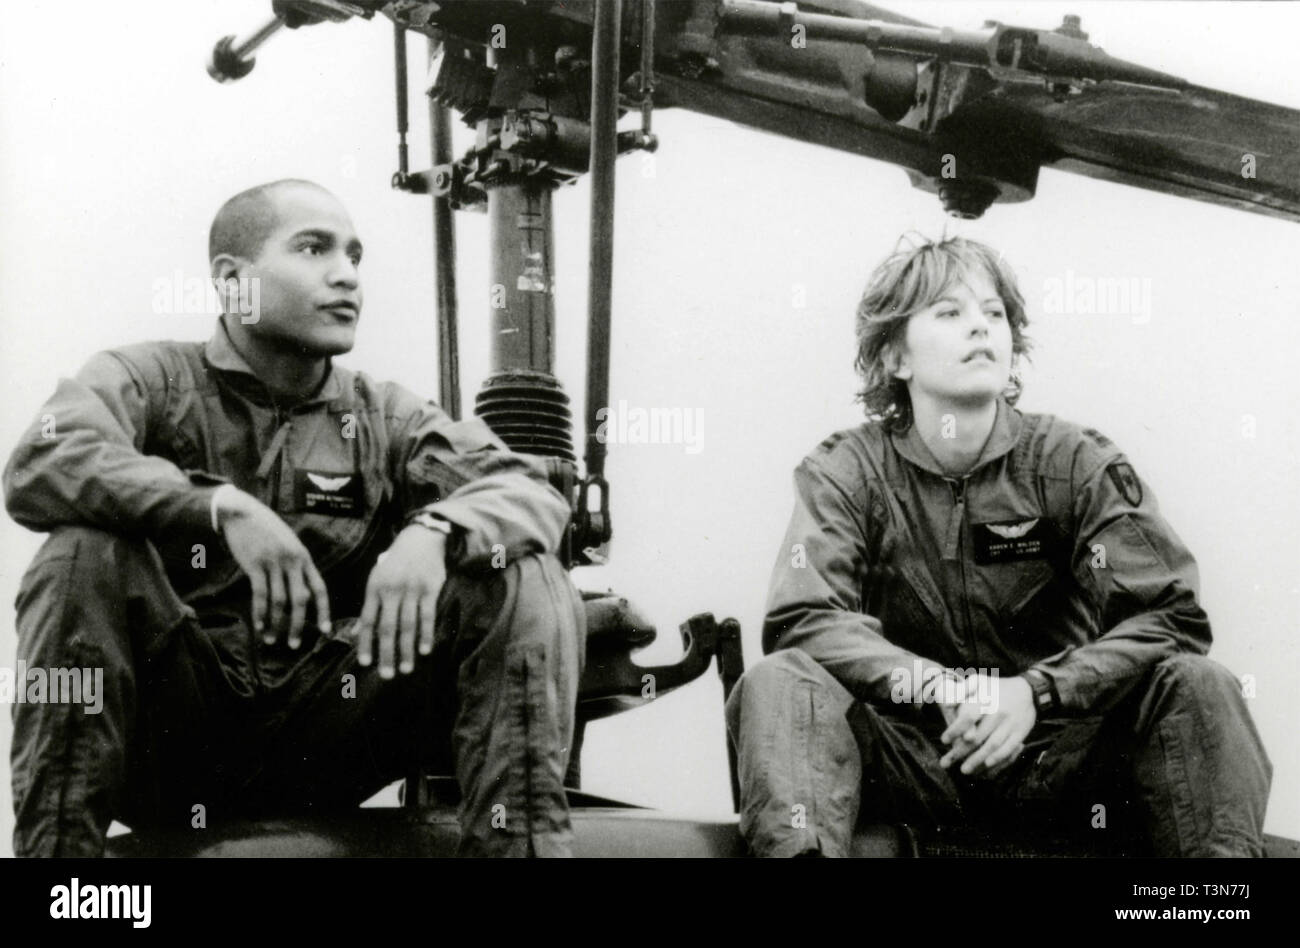 Seth Gilliam and Meg Ryan in the movie Courage Under Fire, 1996 - Stock Image